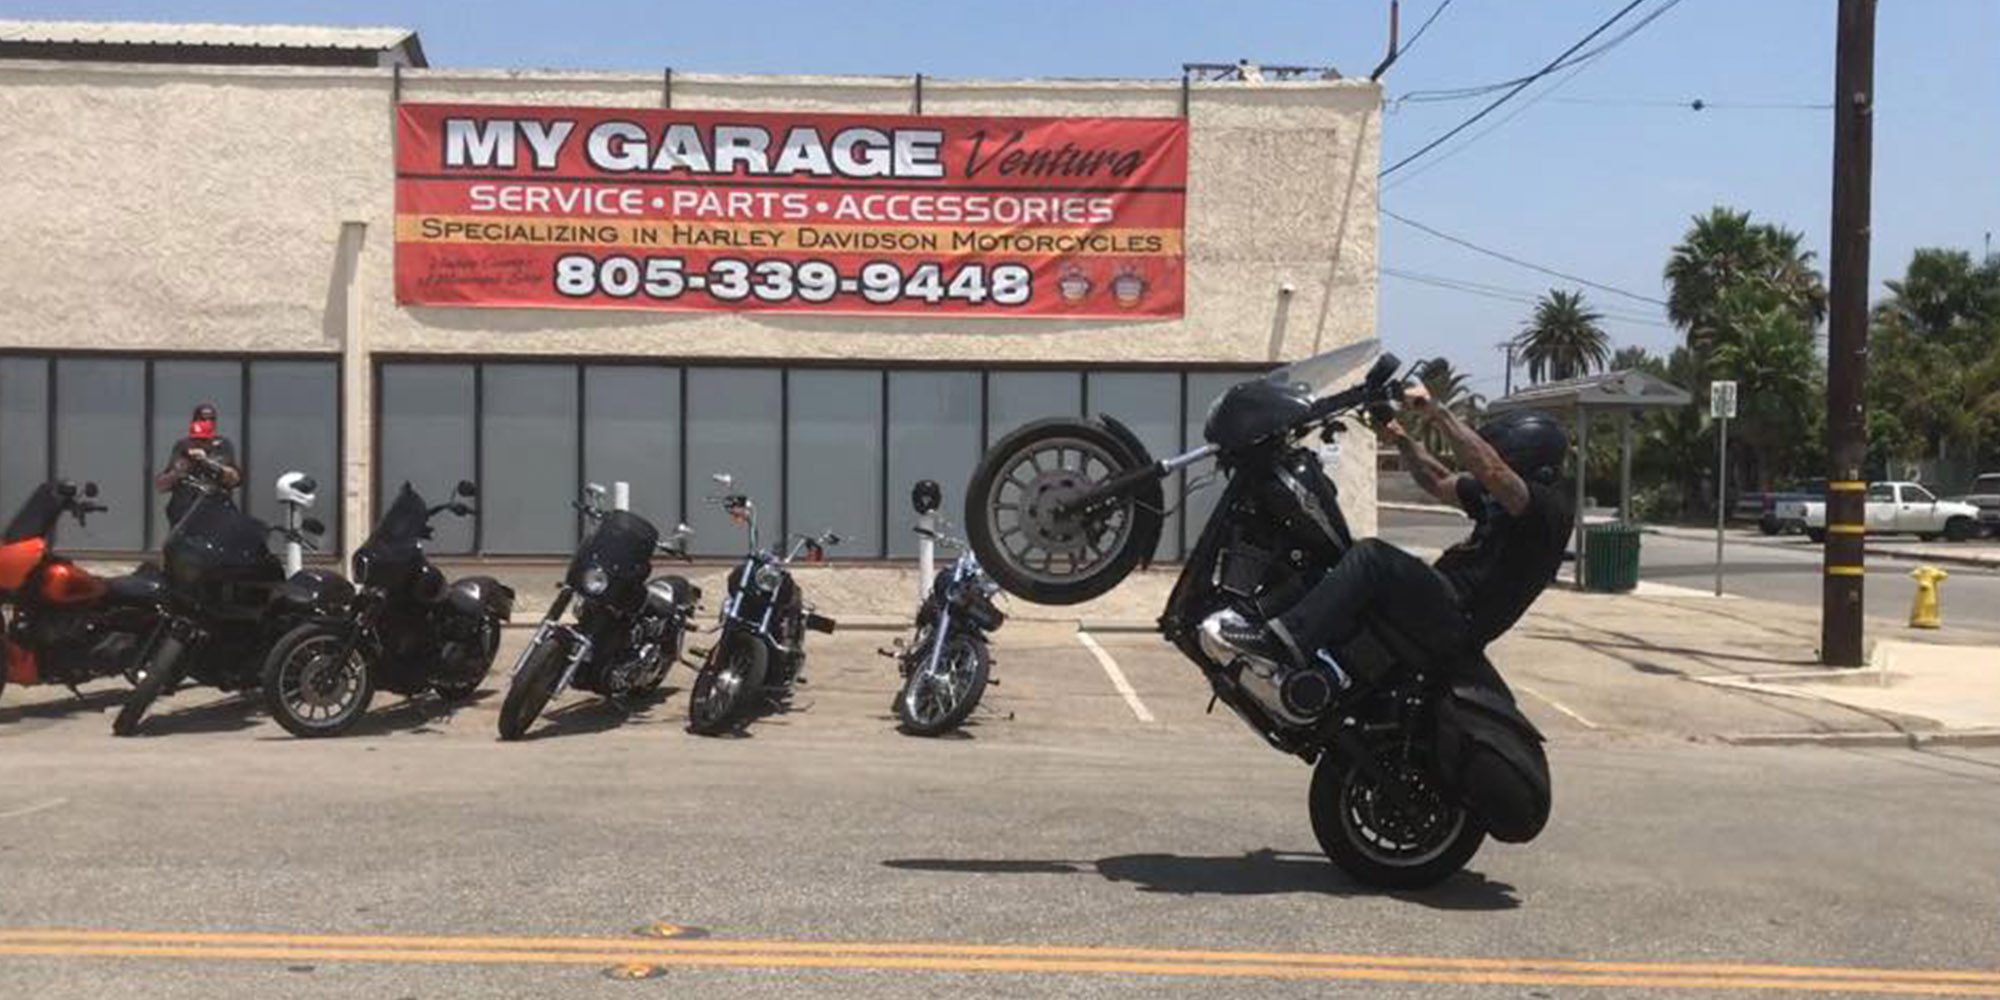 Motorcycle Repair Maintenance Sales At Mygarage Ventura